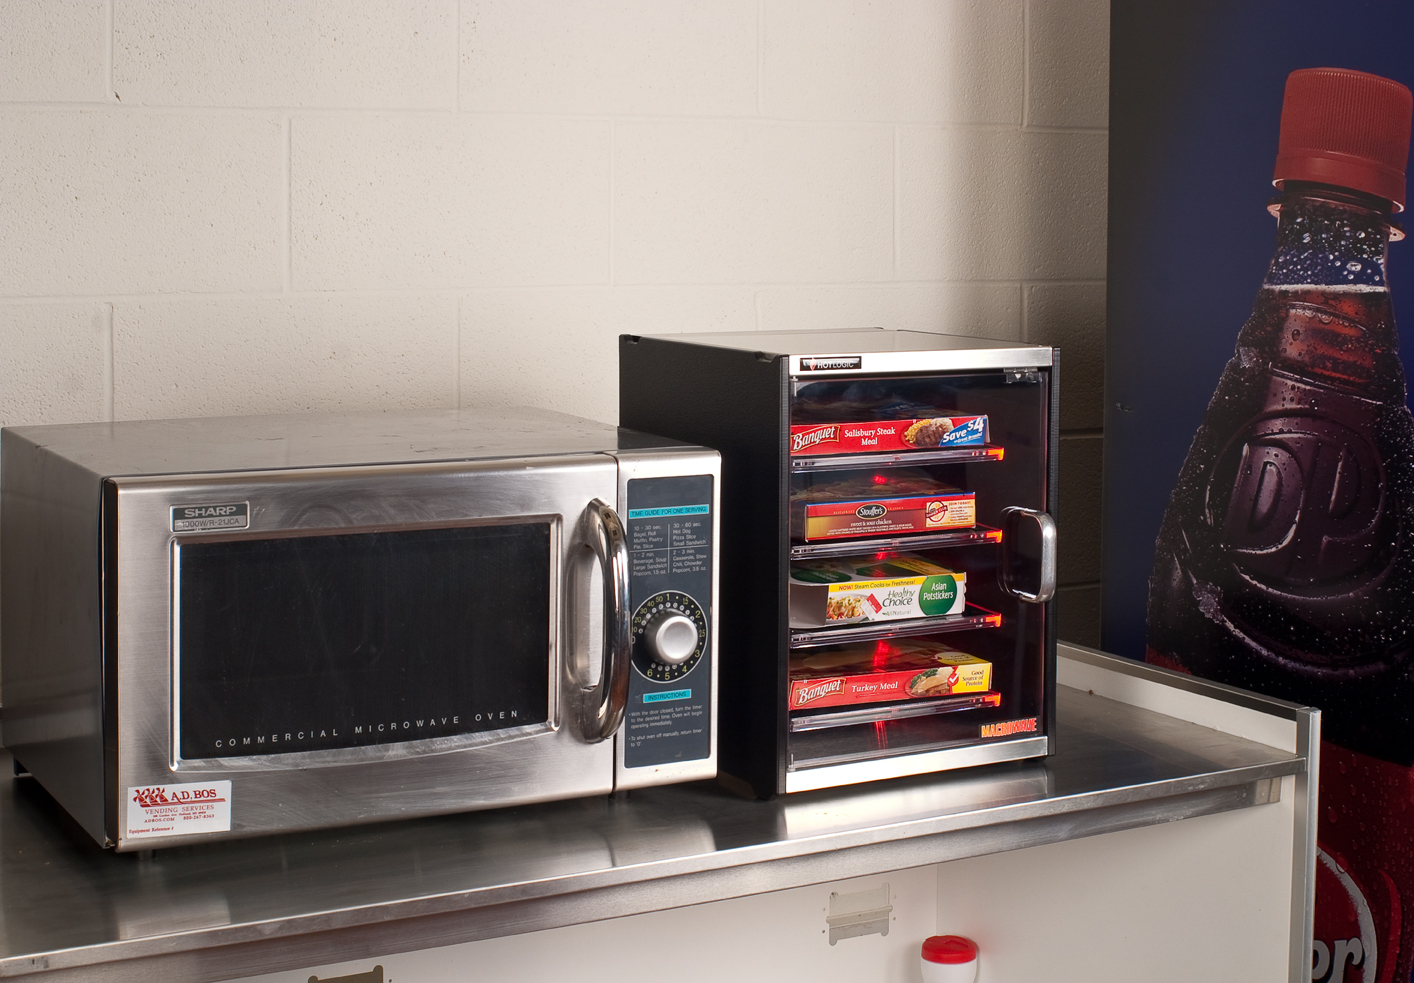 What are the advantages and disadvantages of microwave cooking?